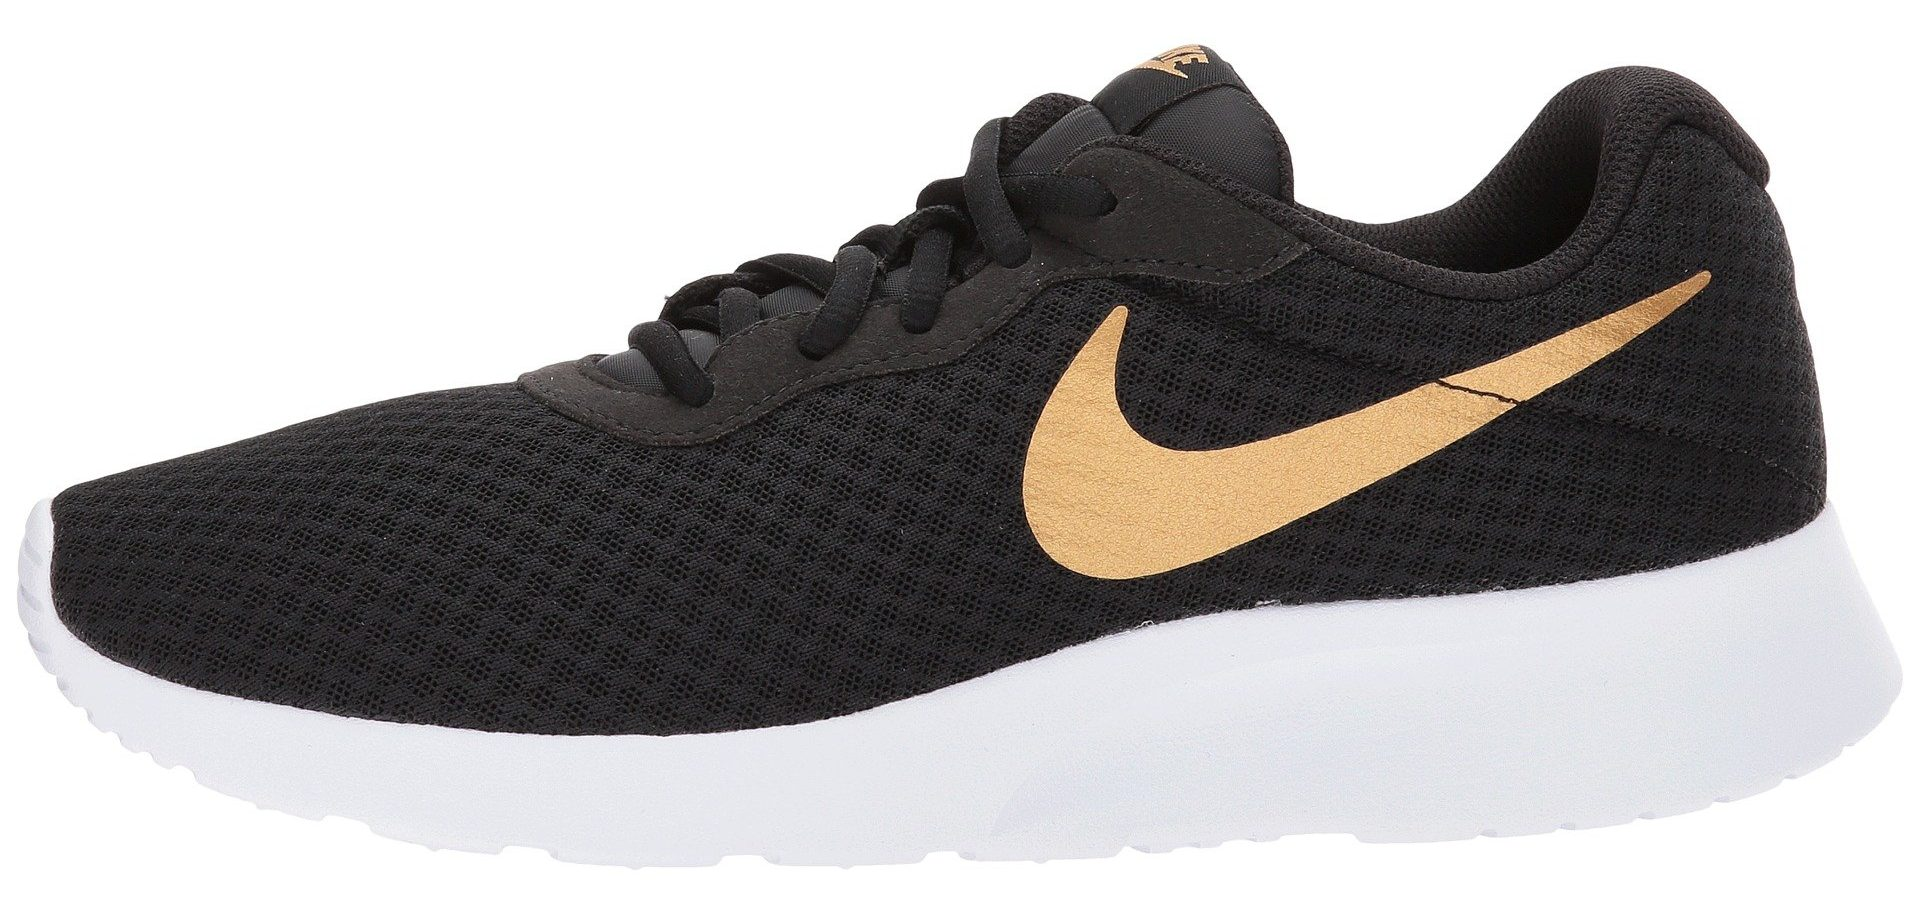 white black and gold nike sneaker